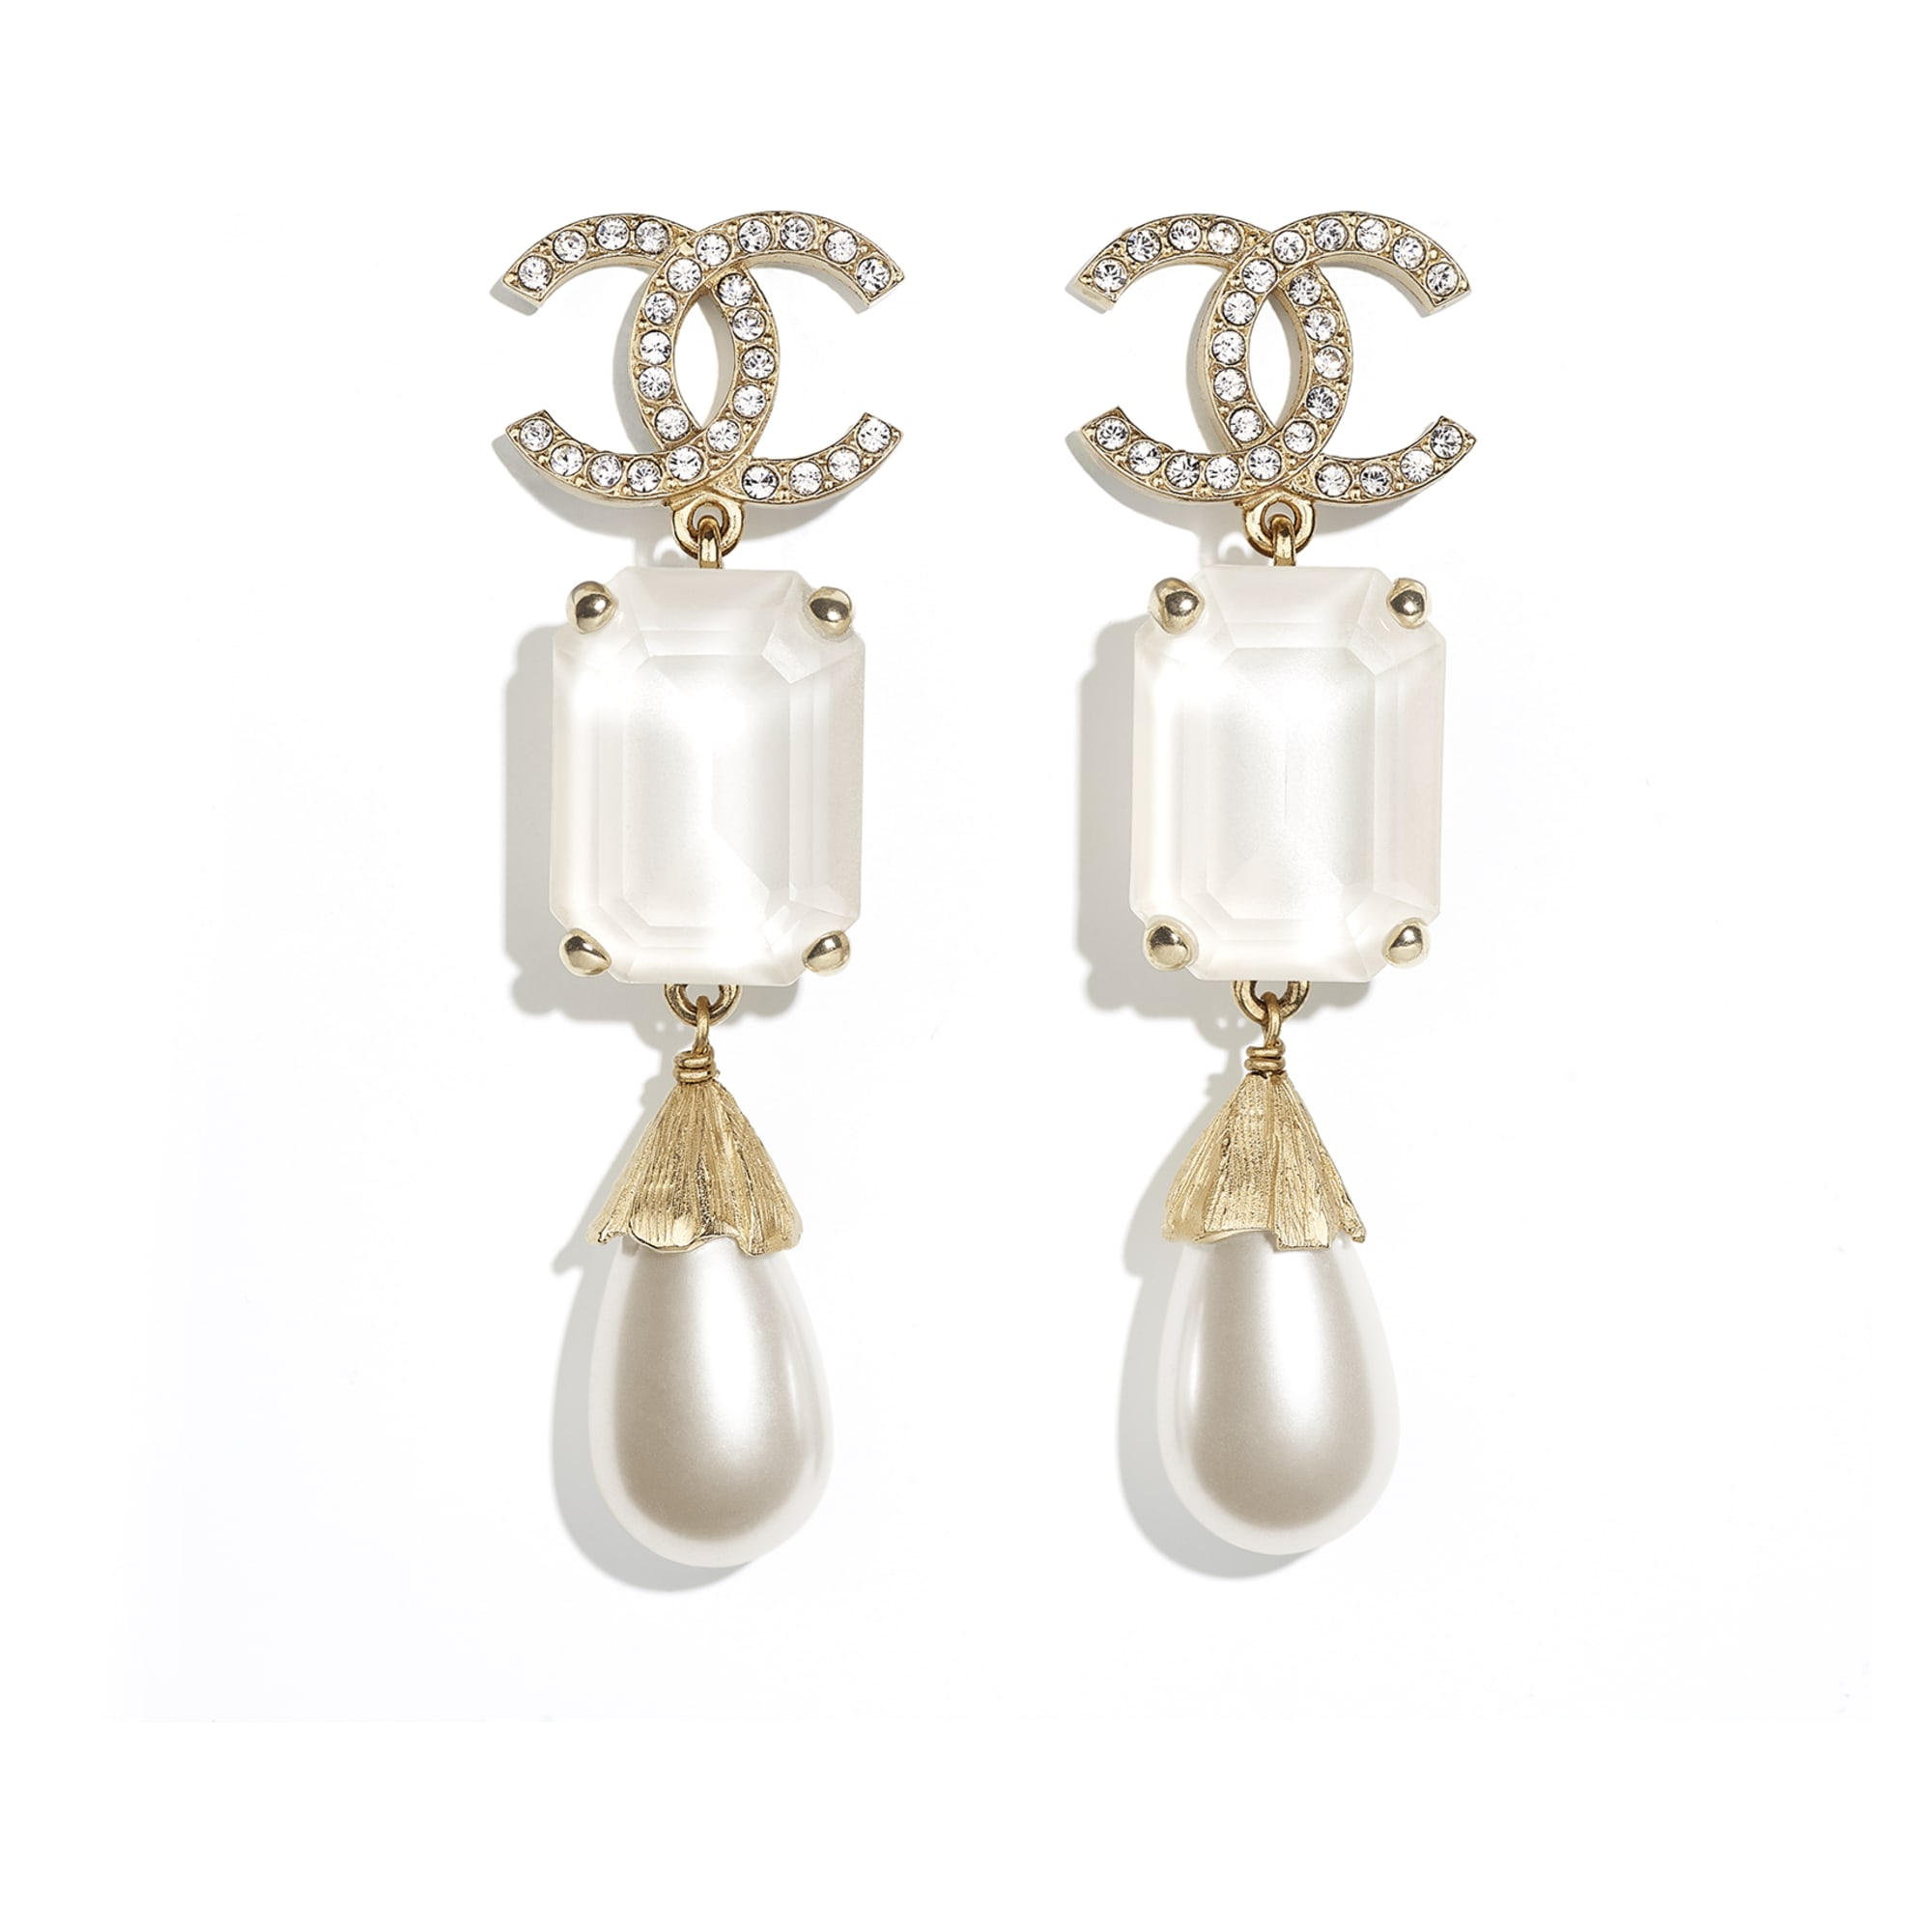 Earrings - Gold, Pearly White, White & Crystal - Metal, Imitation Pearls & Strass - CHANEL - Default view - see standard sized version